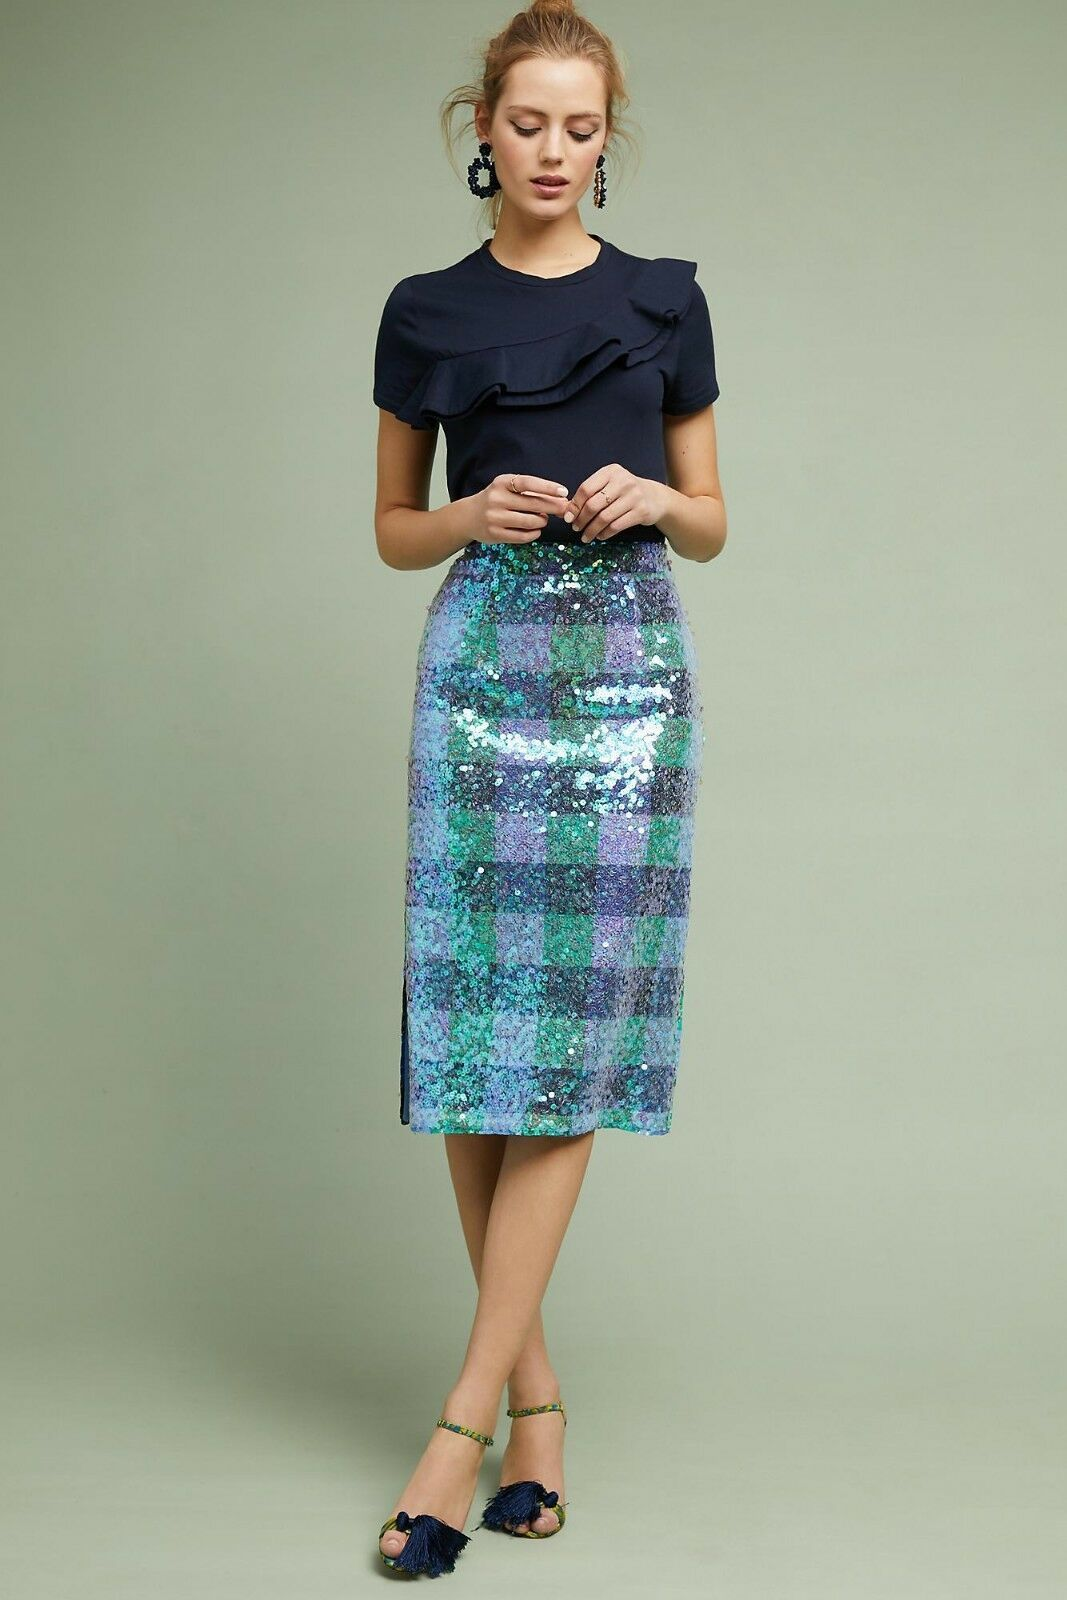 Primary image for NWT ANTHROPOLOGIE BRIX SEQUINED PALETTE MIDI SKIRT by MAEVE 6